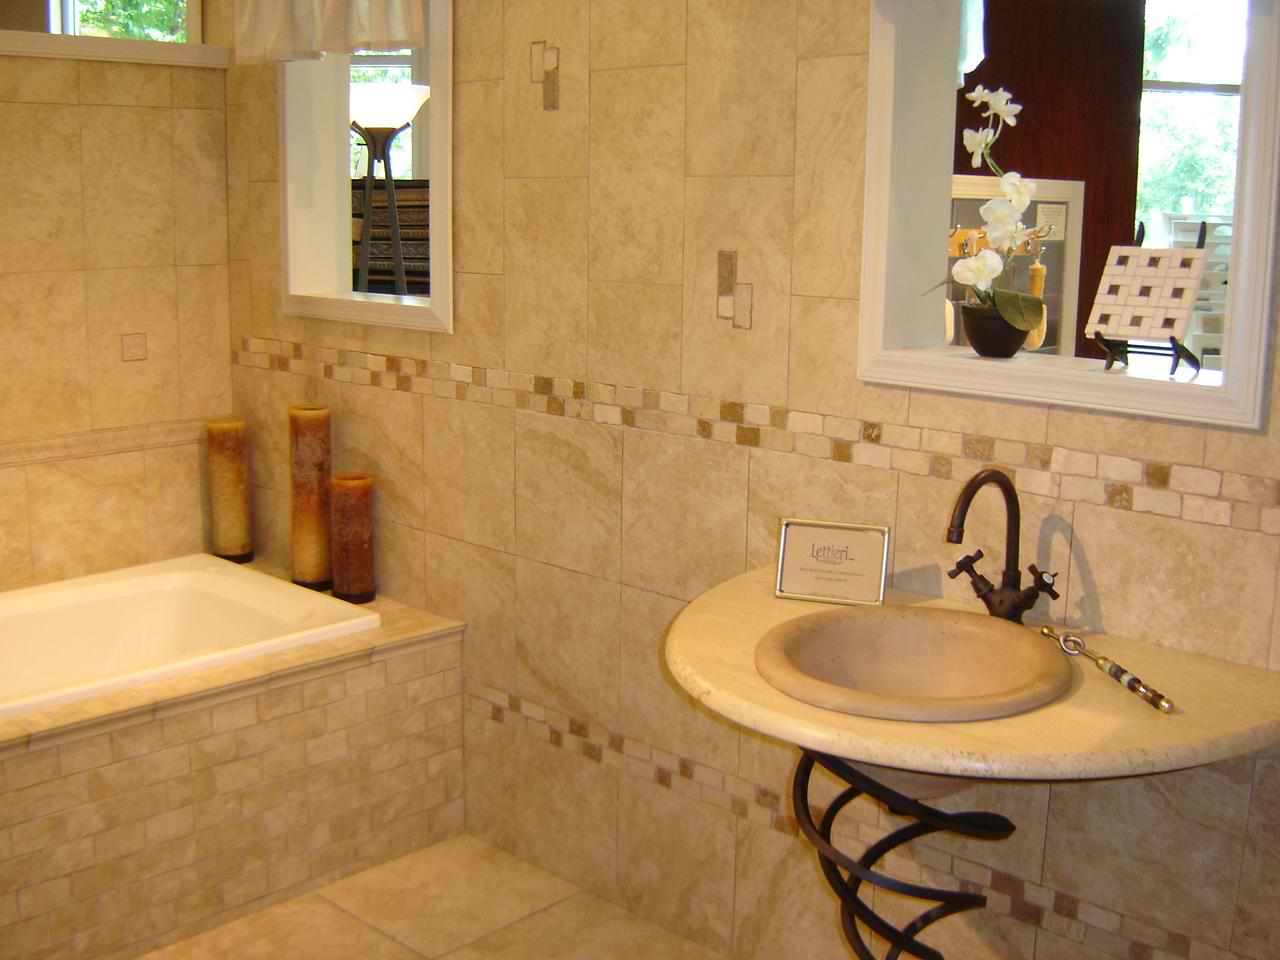 Tips On How To Refinish Bathroom Tiles